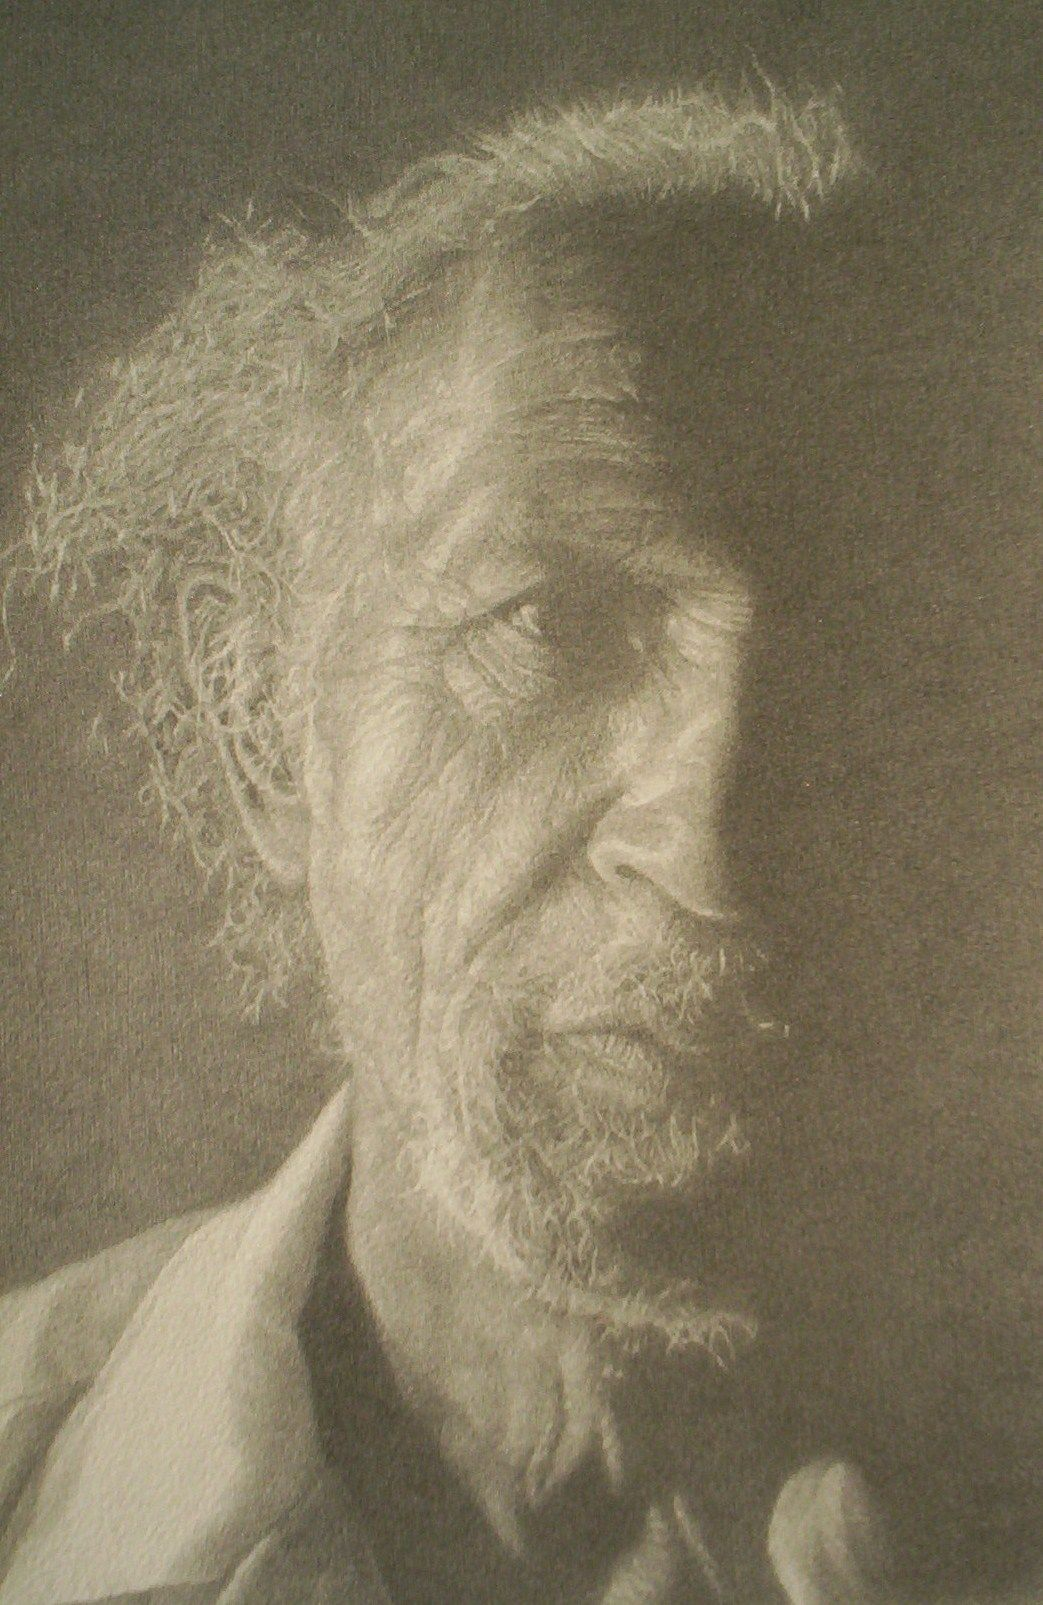 """Roland""    2009 Pencil on wove paper   11 x 16 inches   © Richard Wyatt Jr."